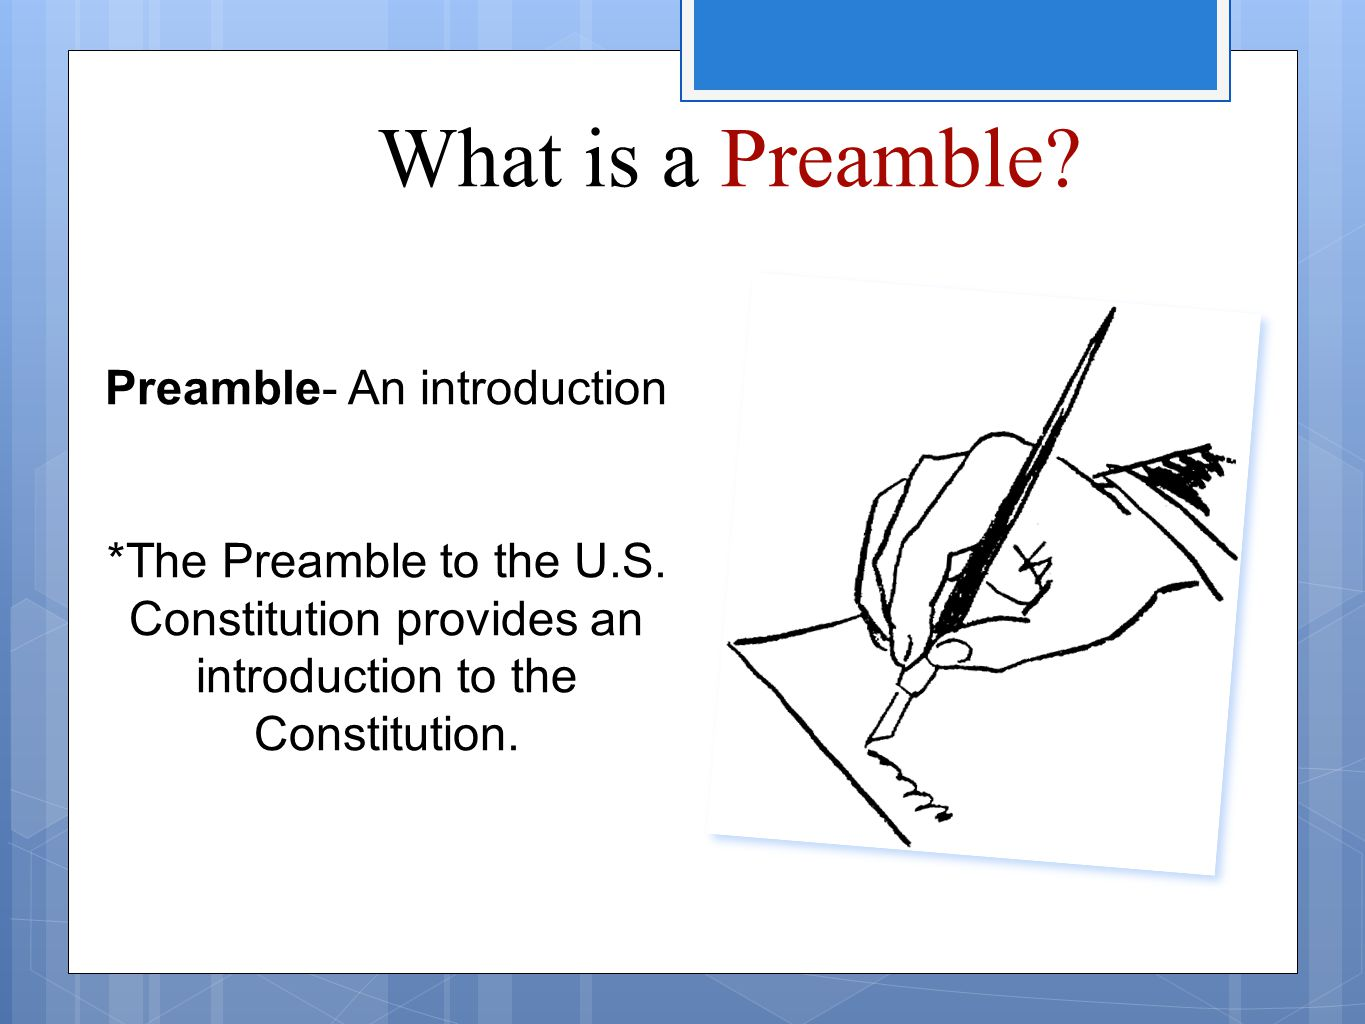 Preamble- An introduction